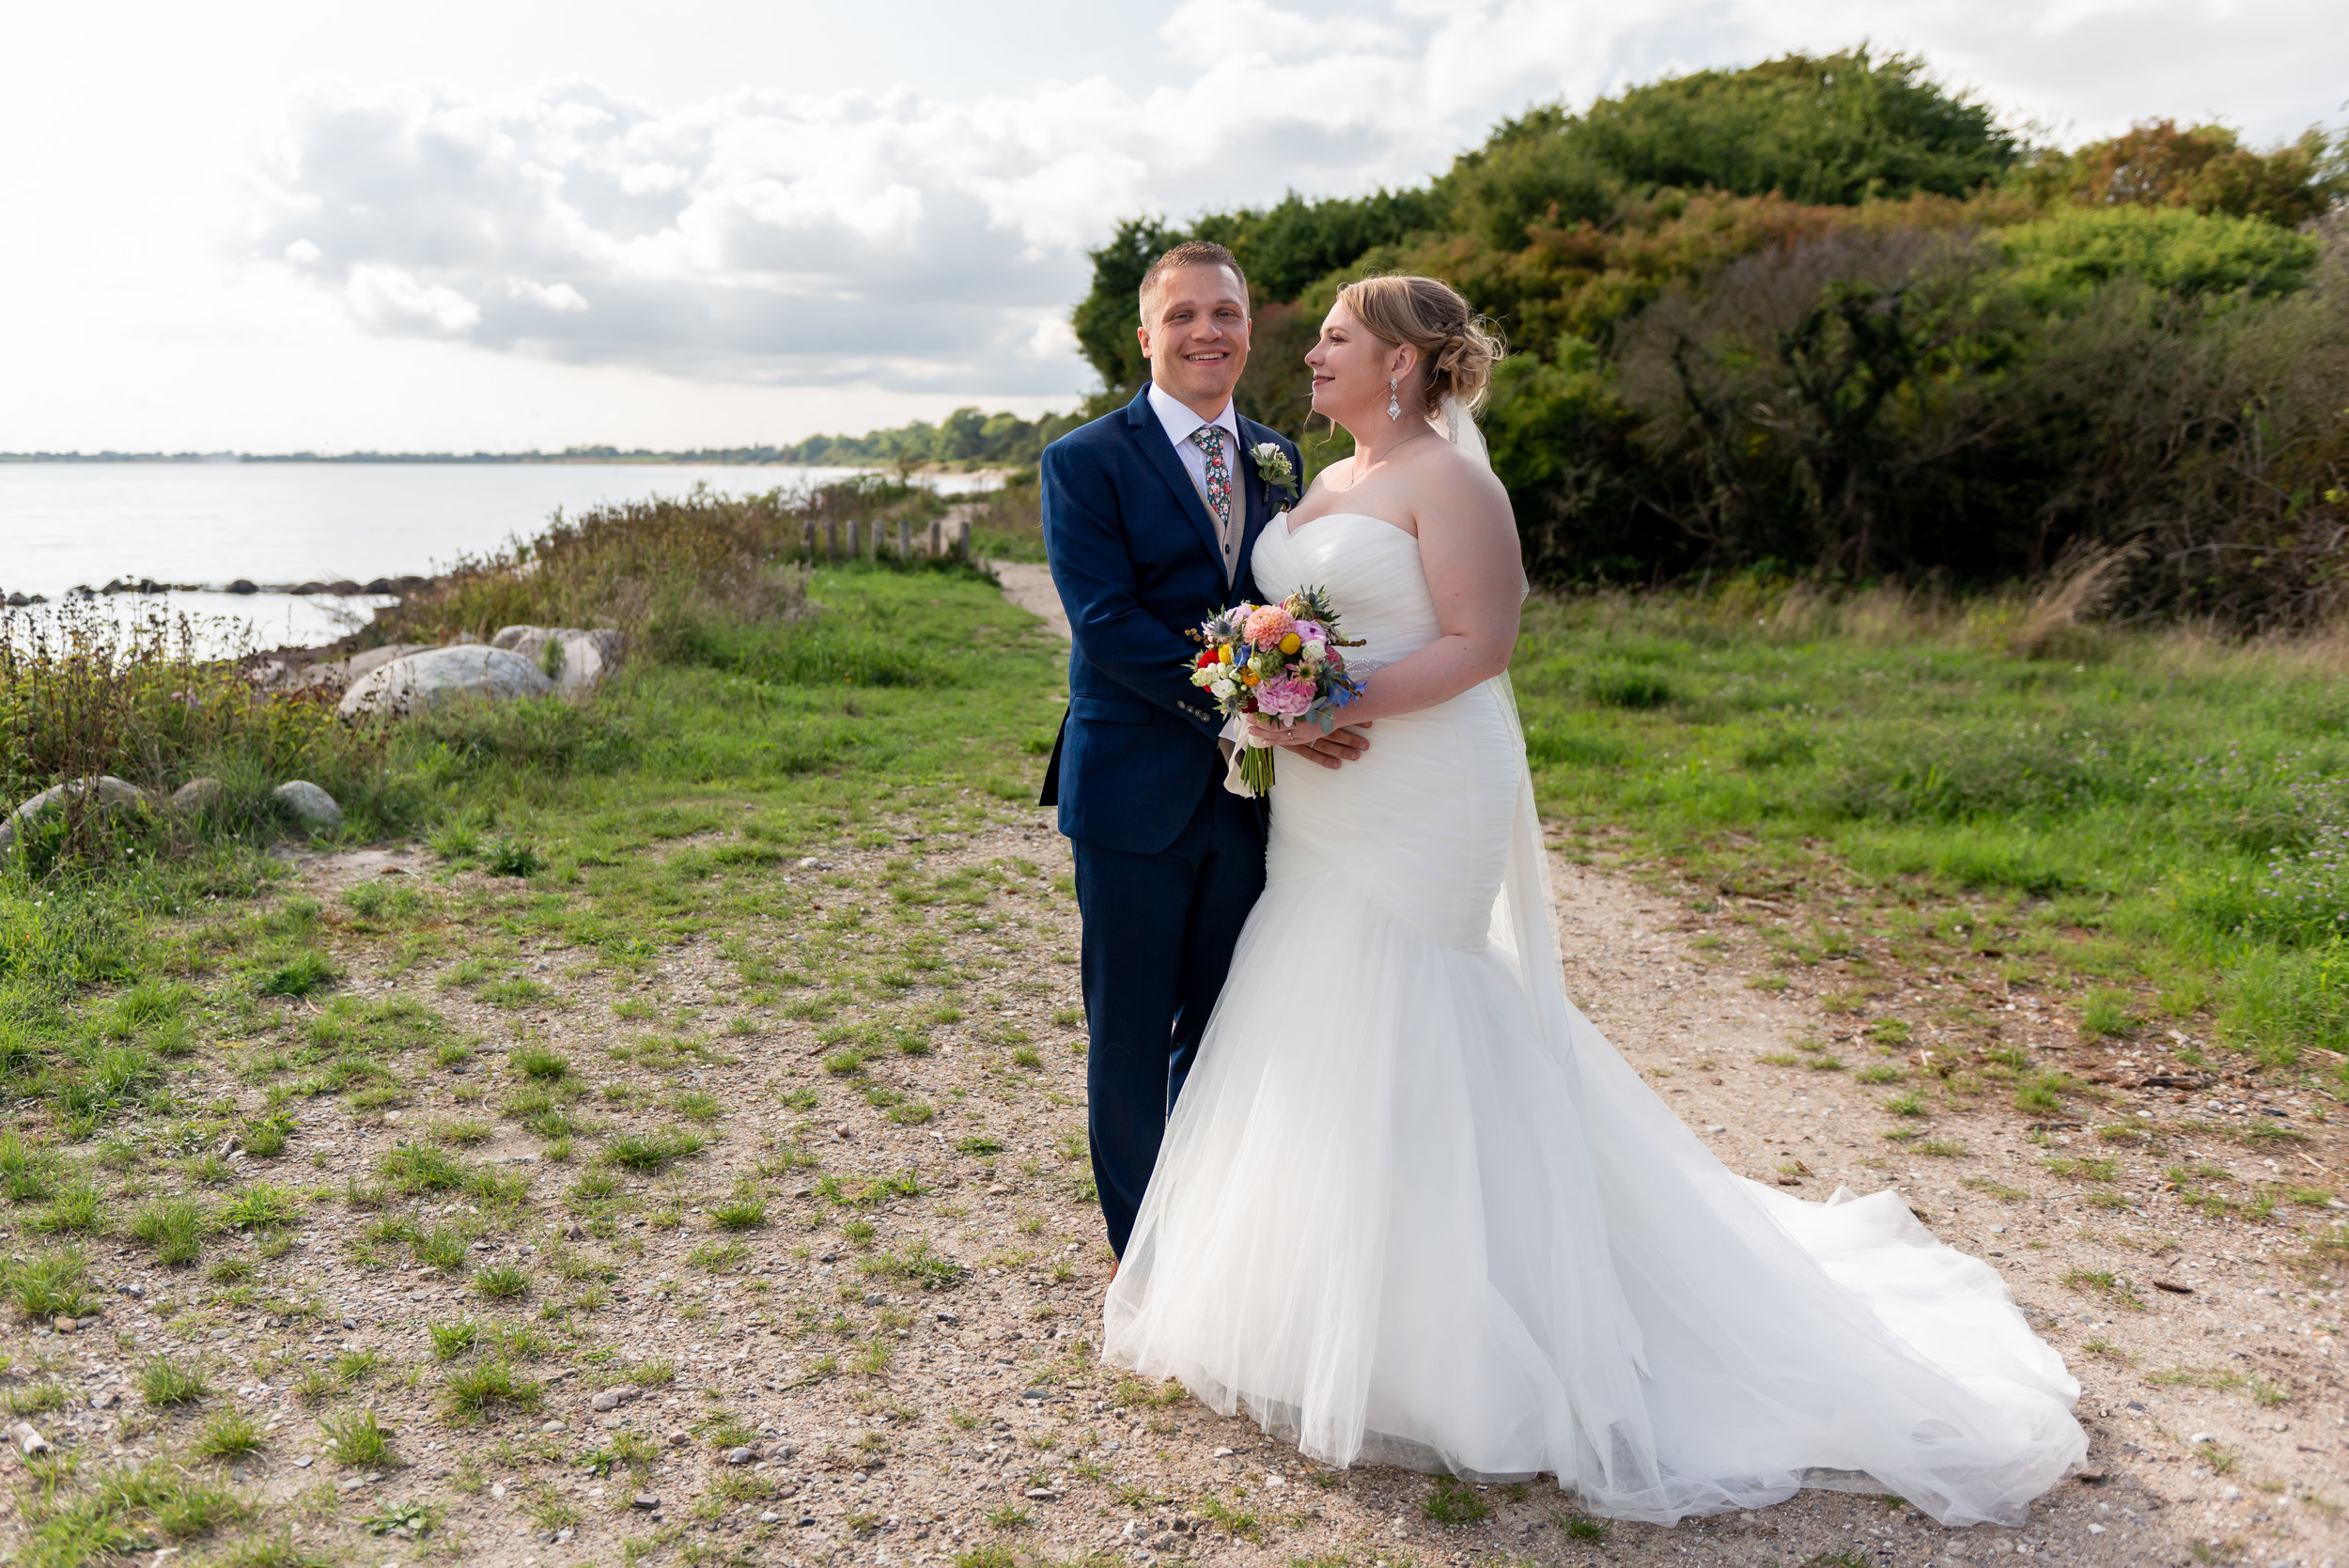 - Thank you for the best memories we could ever wish for. We will enjoy these wedding photos and the memories Pernille captured at our wedding many years from now.- Linette & Morten